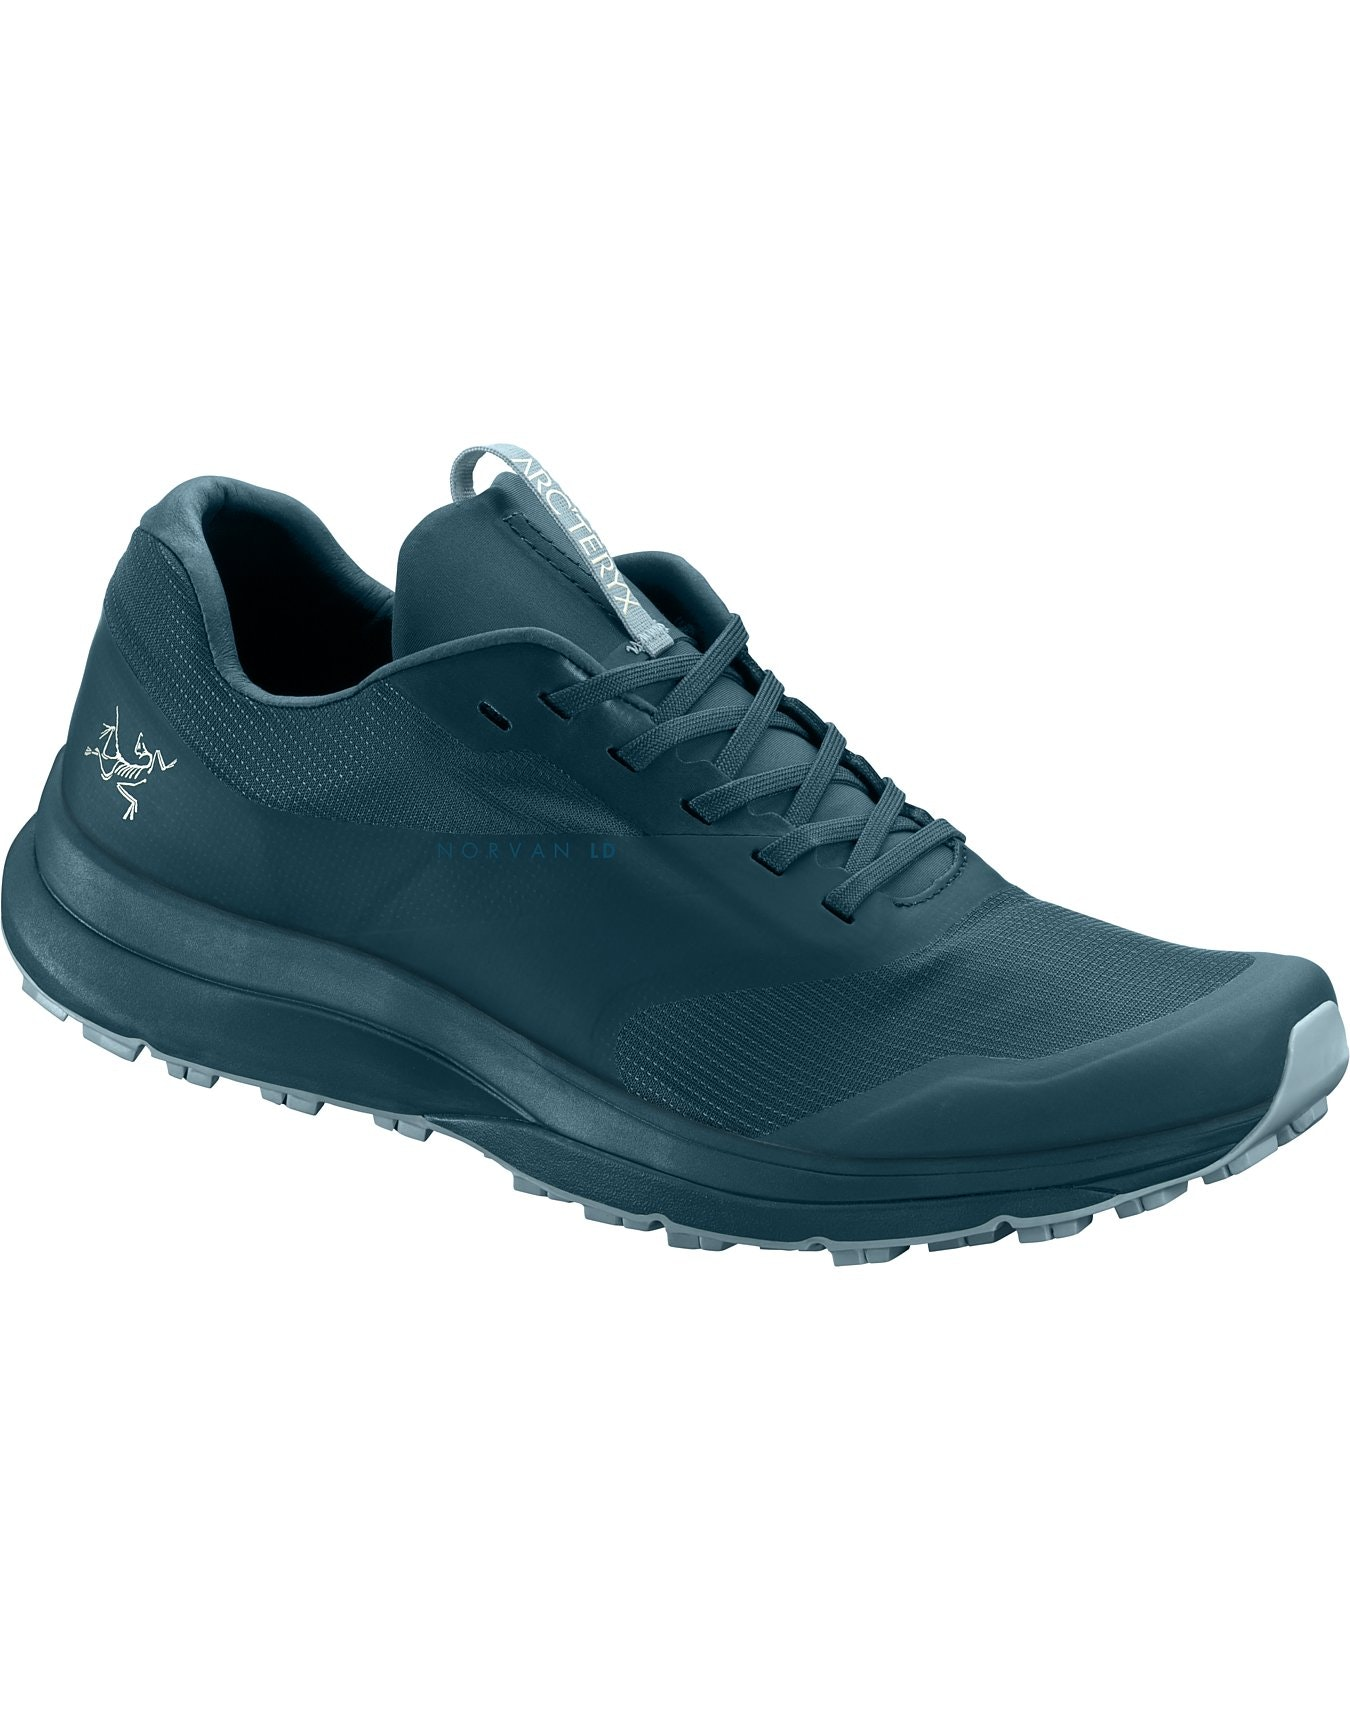 brand new 3b0f0 2acc8 Chaussure Norvan LD   Homme   Arc teryx